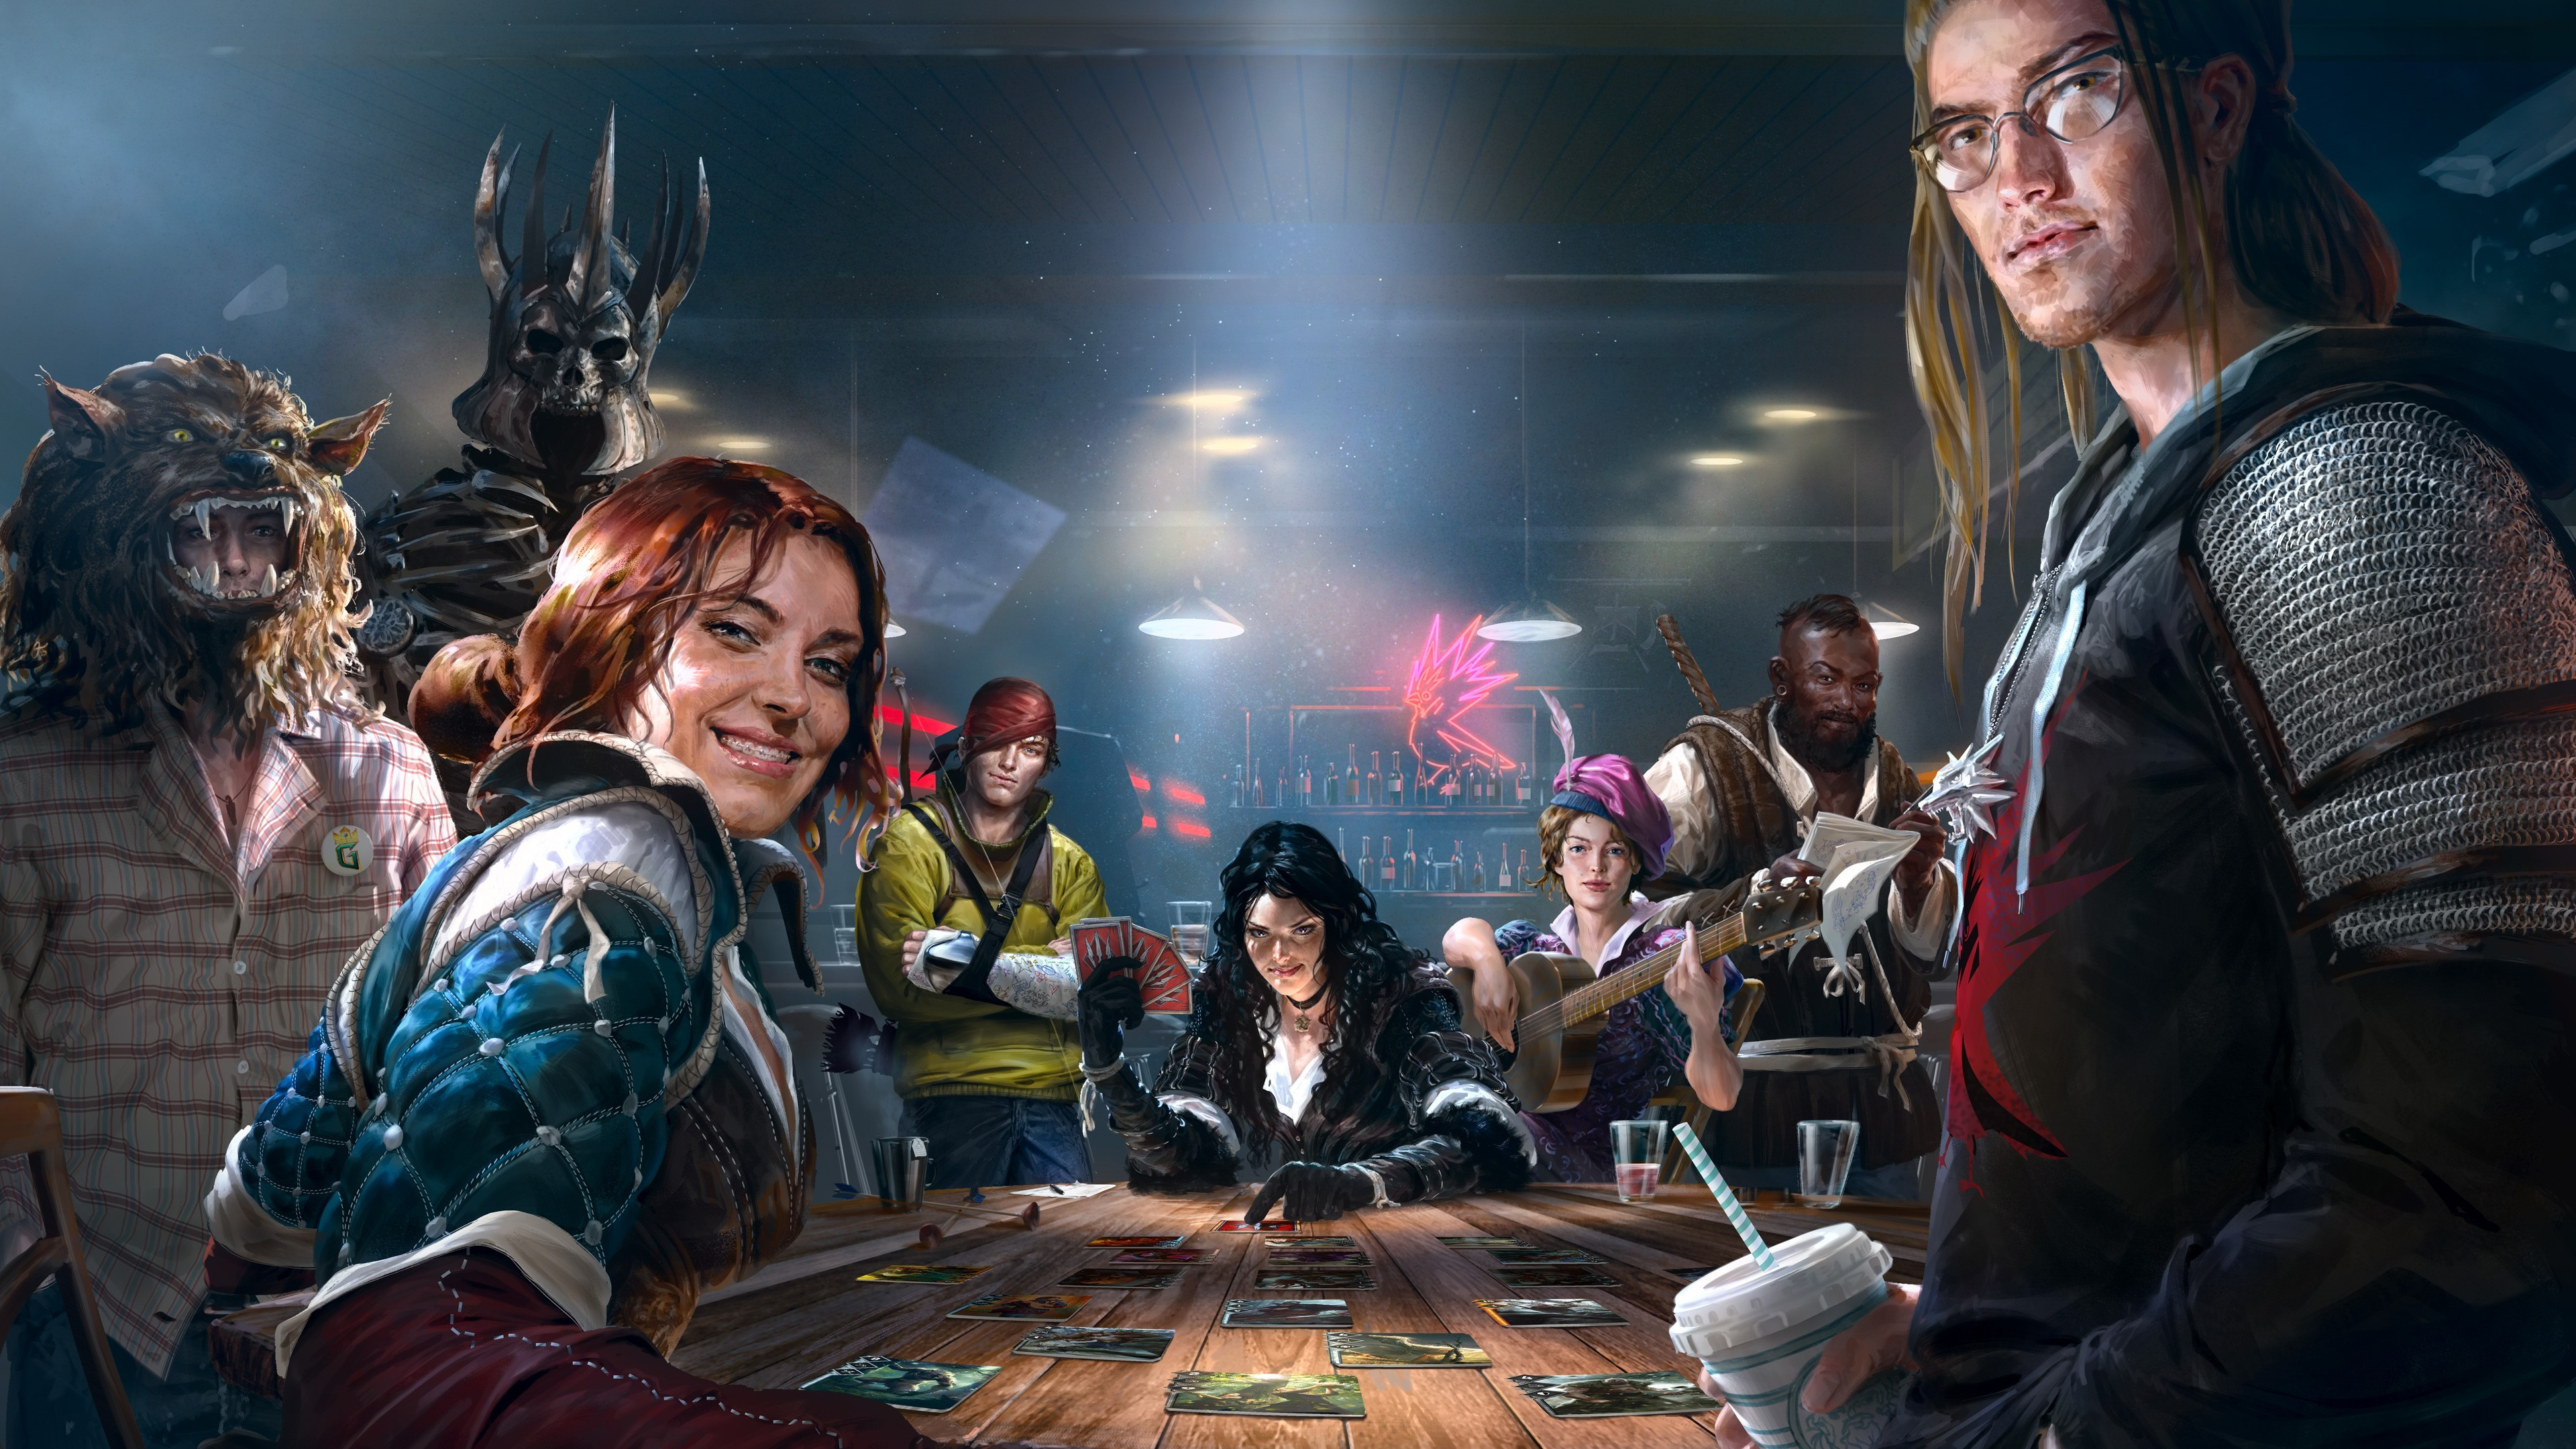 General The Witcher Trading Card Games Gwent The Witcher 3: Wild  Hunt Triss Merigold